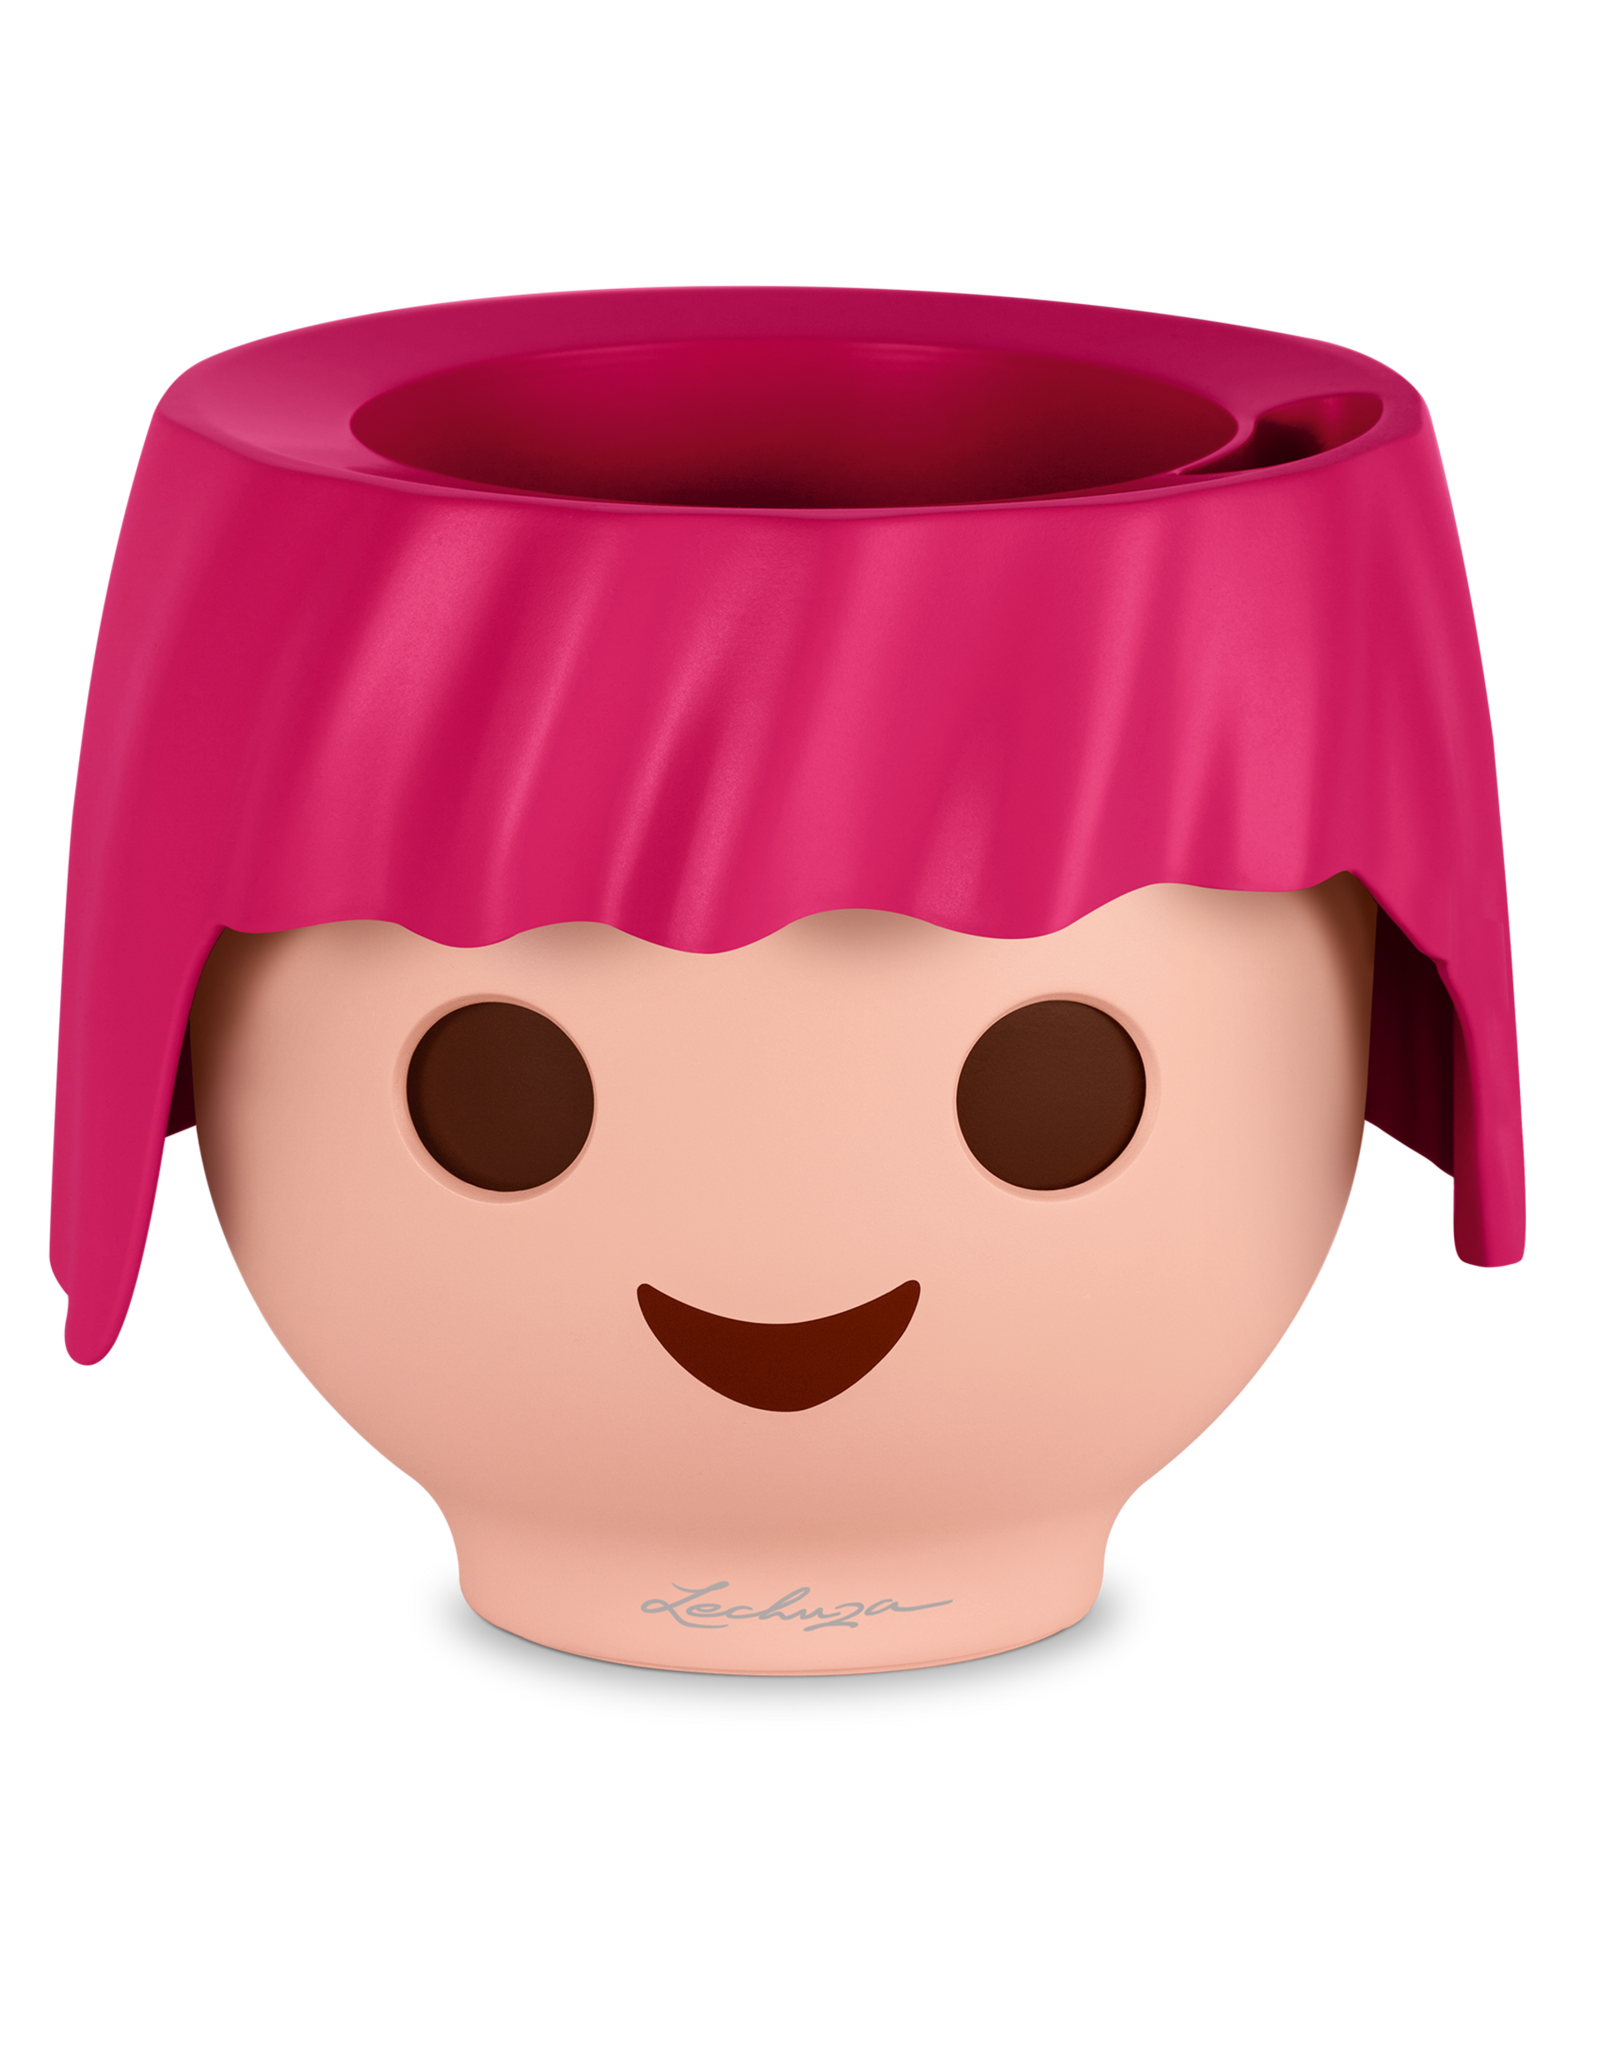 Playmobil OJO All-in-One Planter Ruby Pink